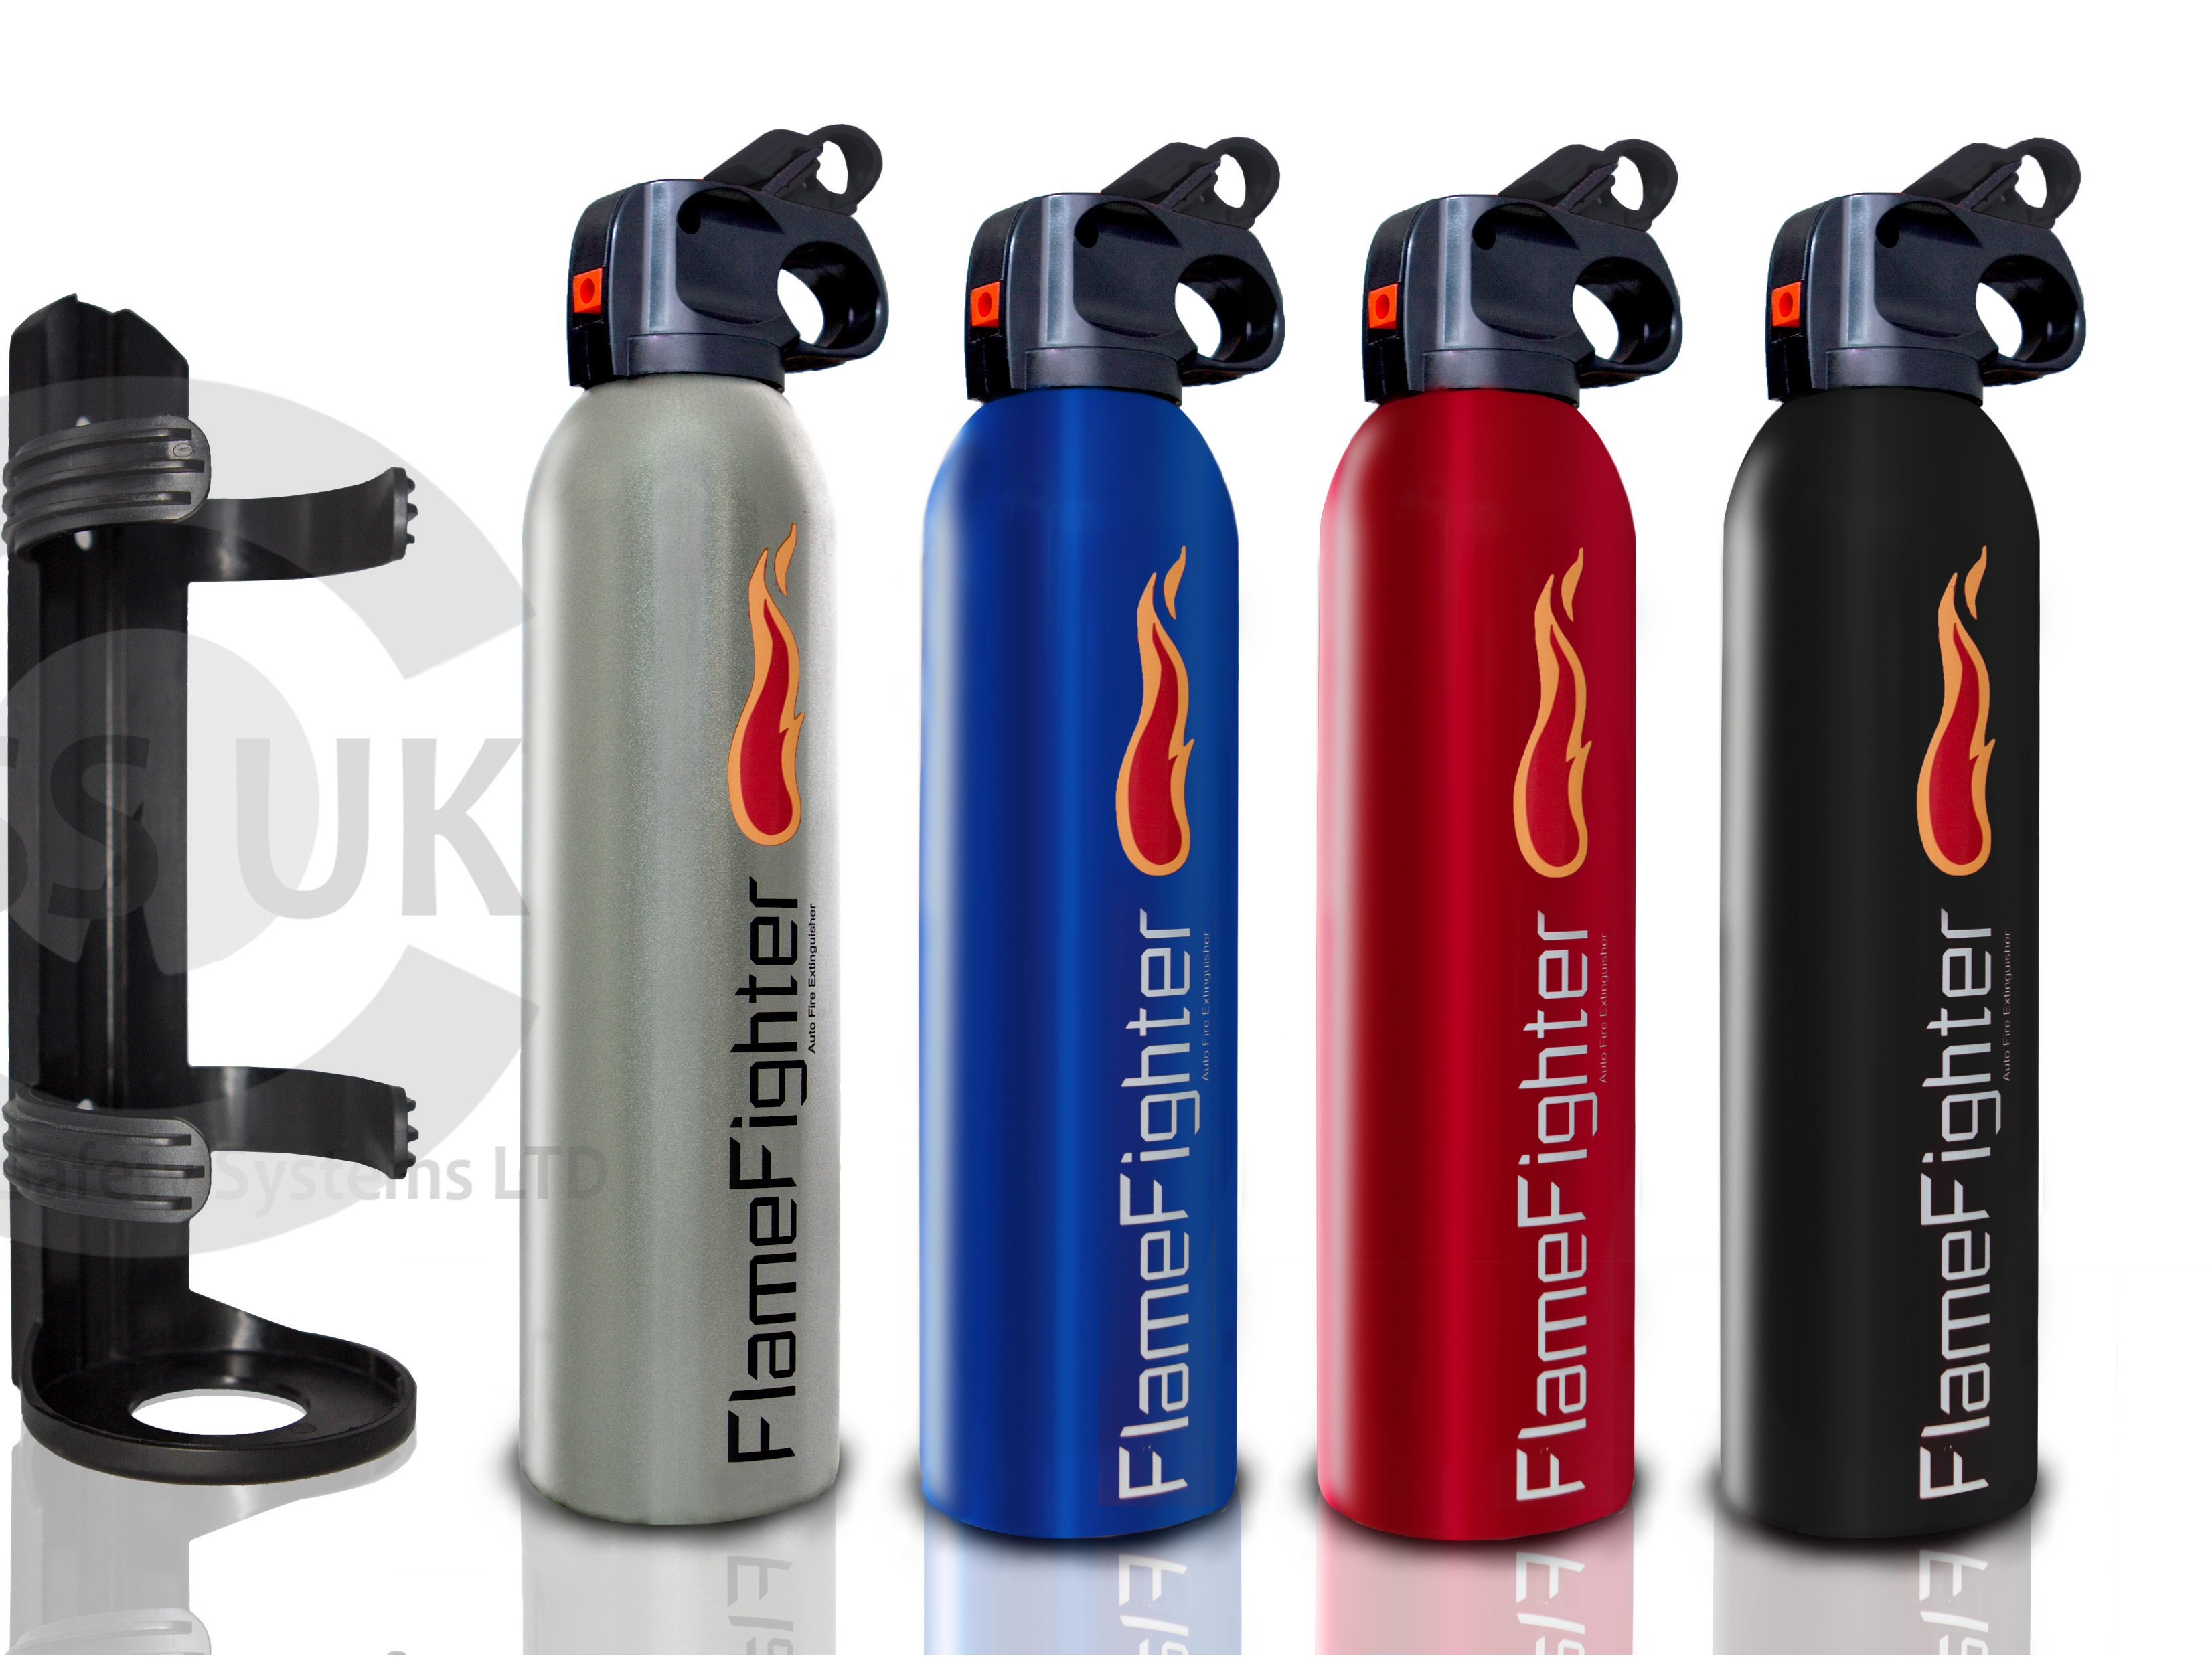 600g Powder Fire Extinguisher new